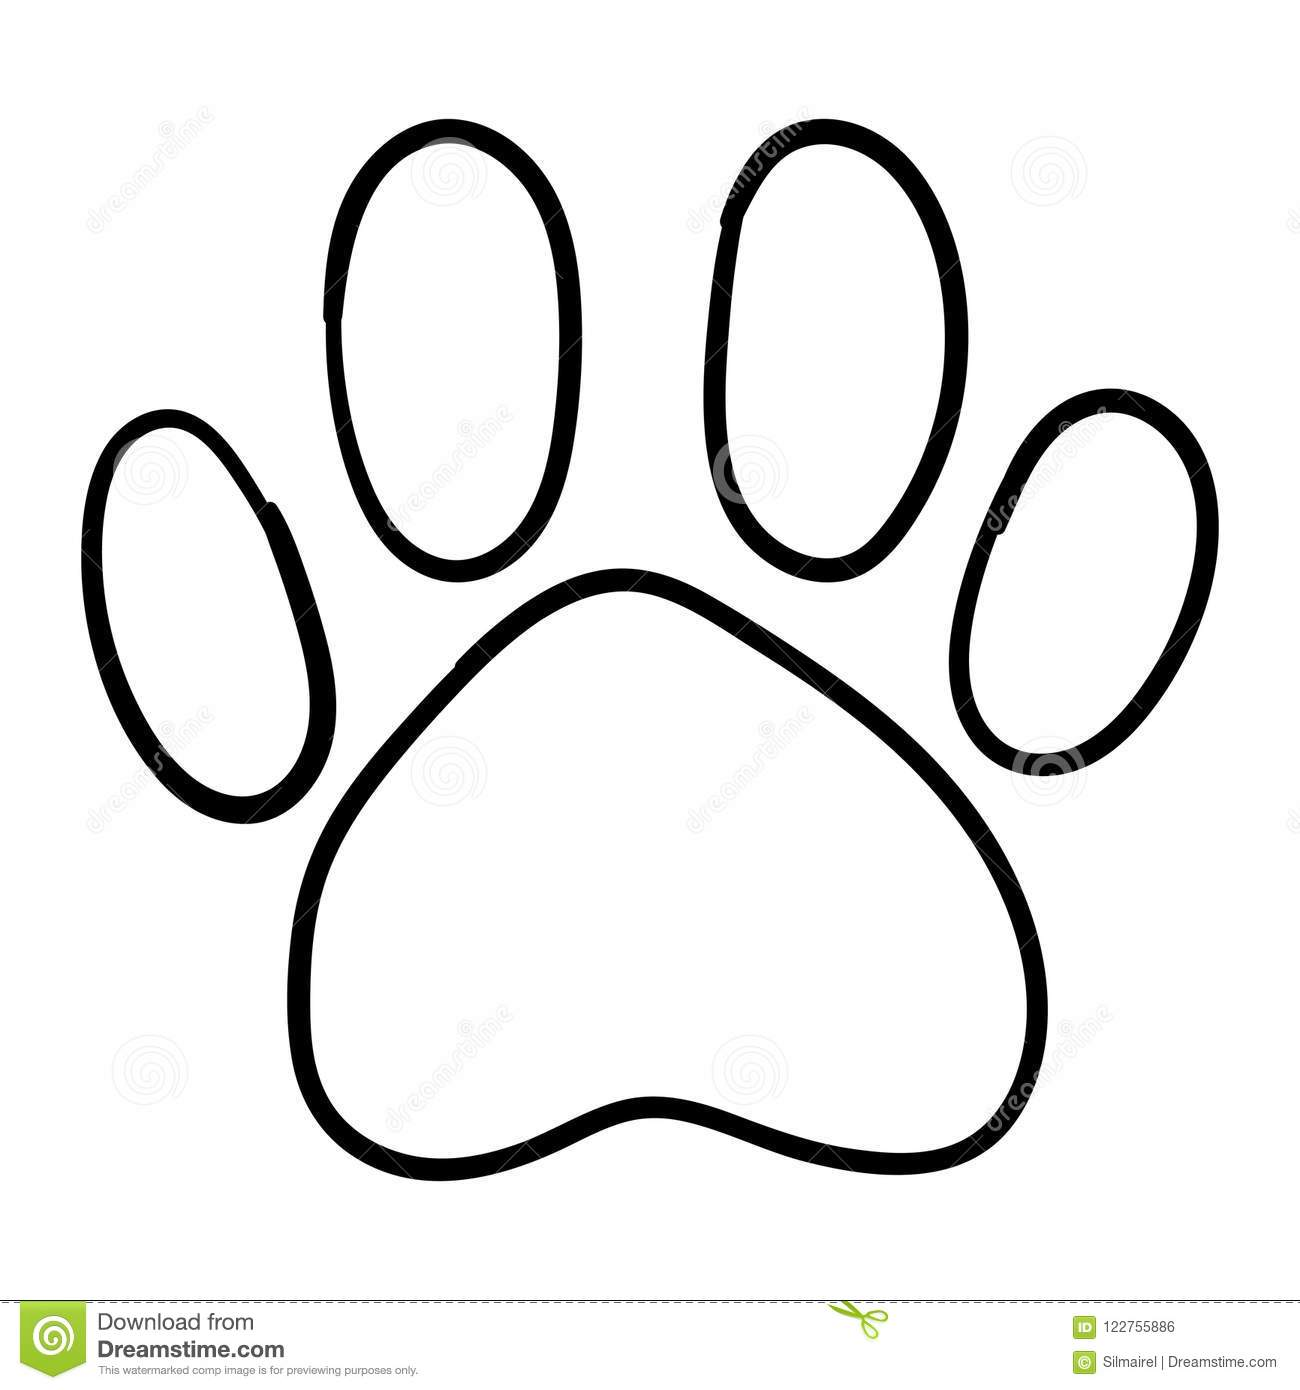 Monochrome Black And White Dog Cat Pet Animal Paw Foot Isolated Hand